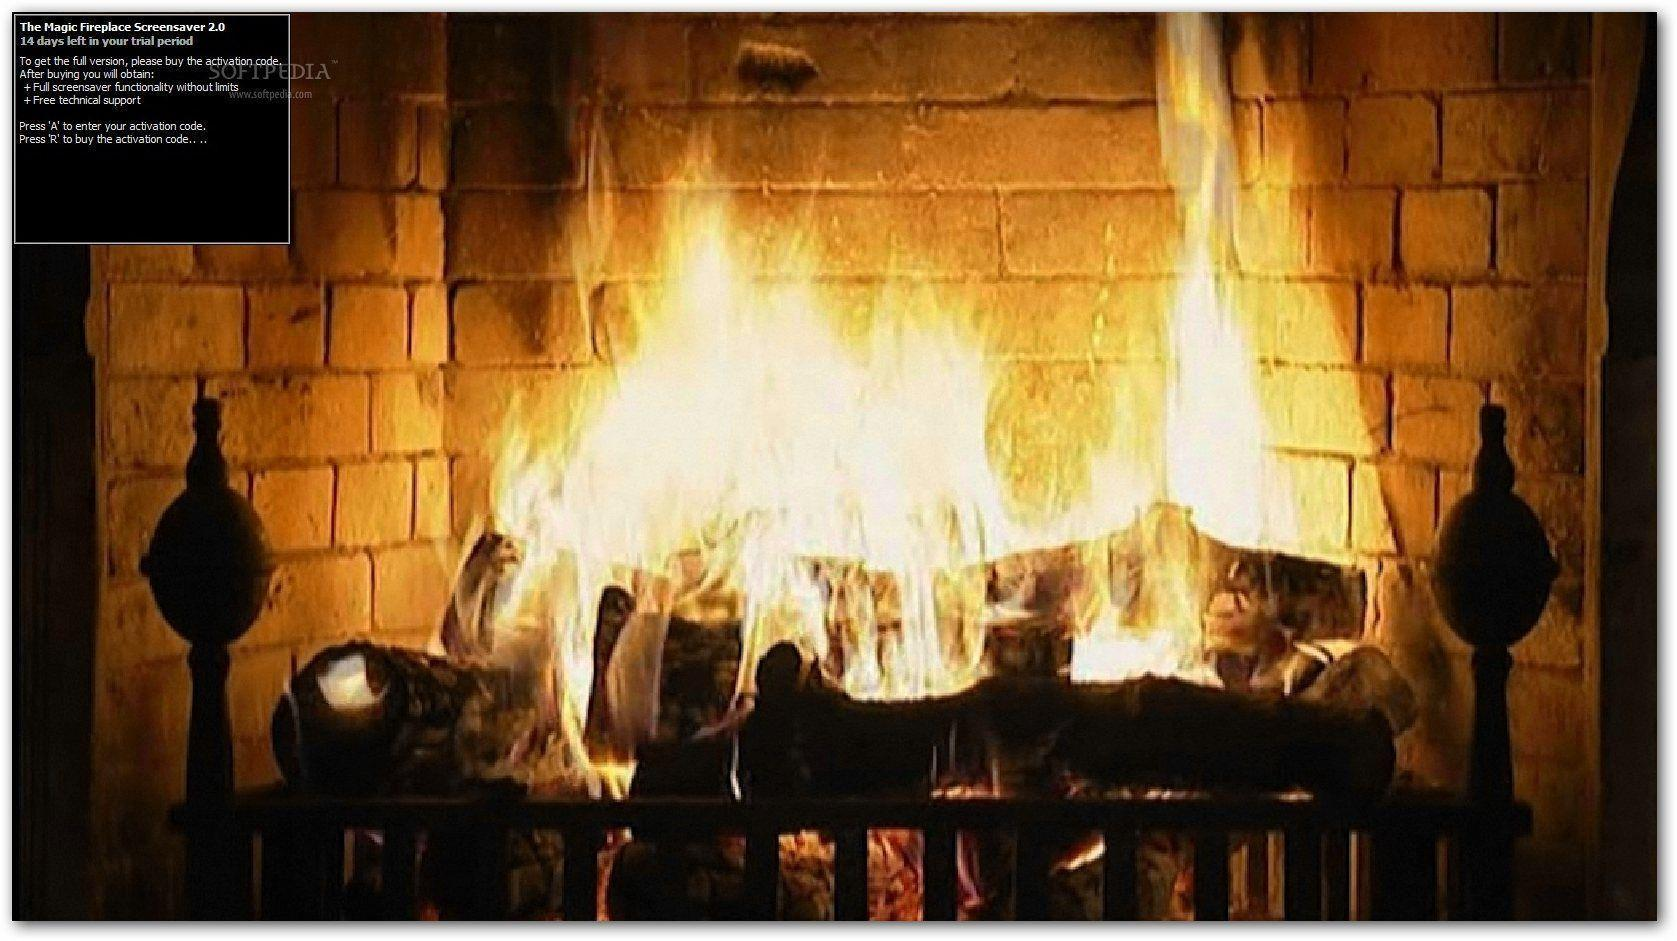 Free Fireplace Wallpaper: Free Fireplace Wallpapers